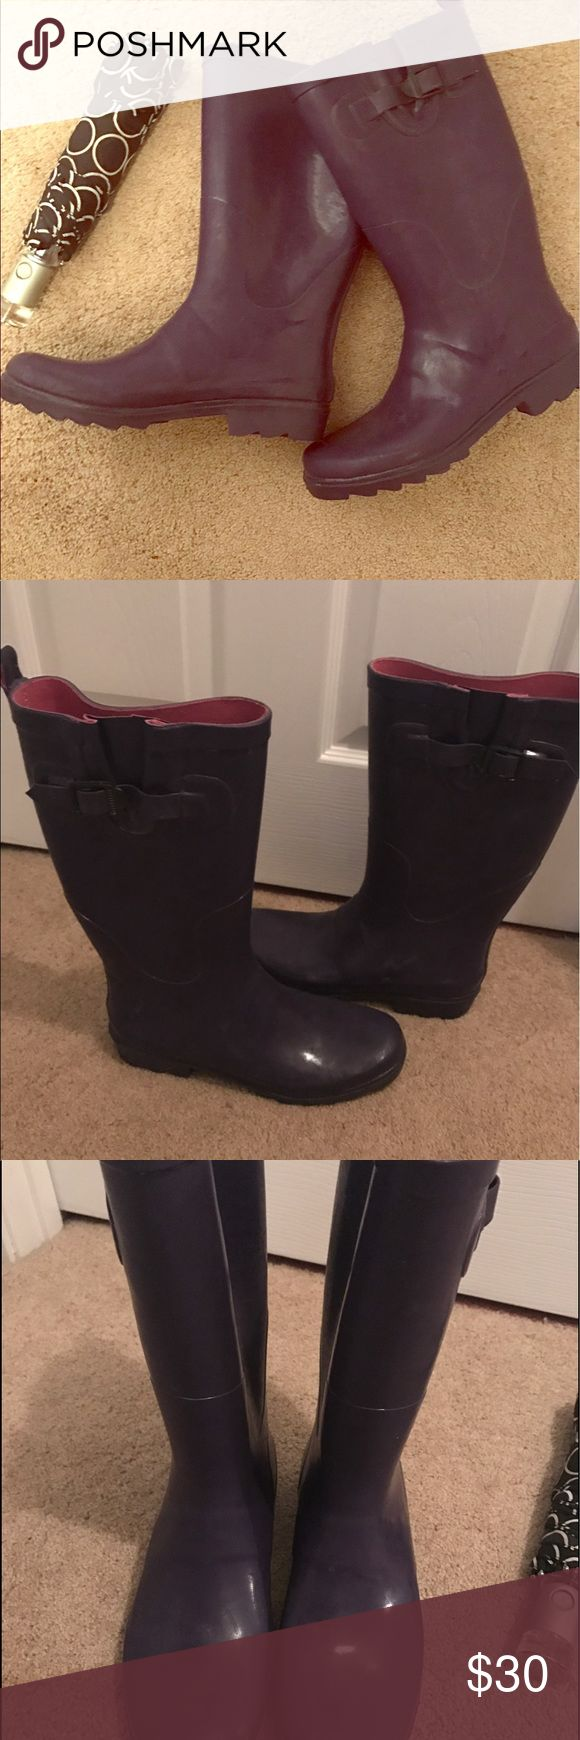 """☔️ Purple and Pink Capelli Rain Boots, EUC ☔️ So sad to list these, I wish they would fit! Anyone with wide calves knows the struggle! These do have some stretch to them, would easily fit 16"""" calf and smaller. My loss is your gain! Super fun purple shade with hot pink fabric lining.  ☔️ Lightly cushioned insole, decorative buckle. ☔️14 inch shaft height (from foot bed)  ☔️Rear pull loop for easy pull on ☔️Appx. 14"""" shaft circumference ☔️MINOR signs of wear, small scuffing here and there from…"""